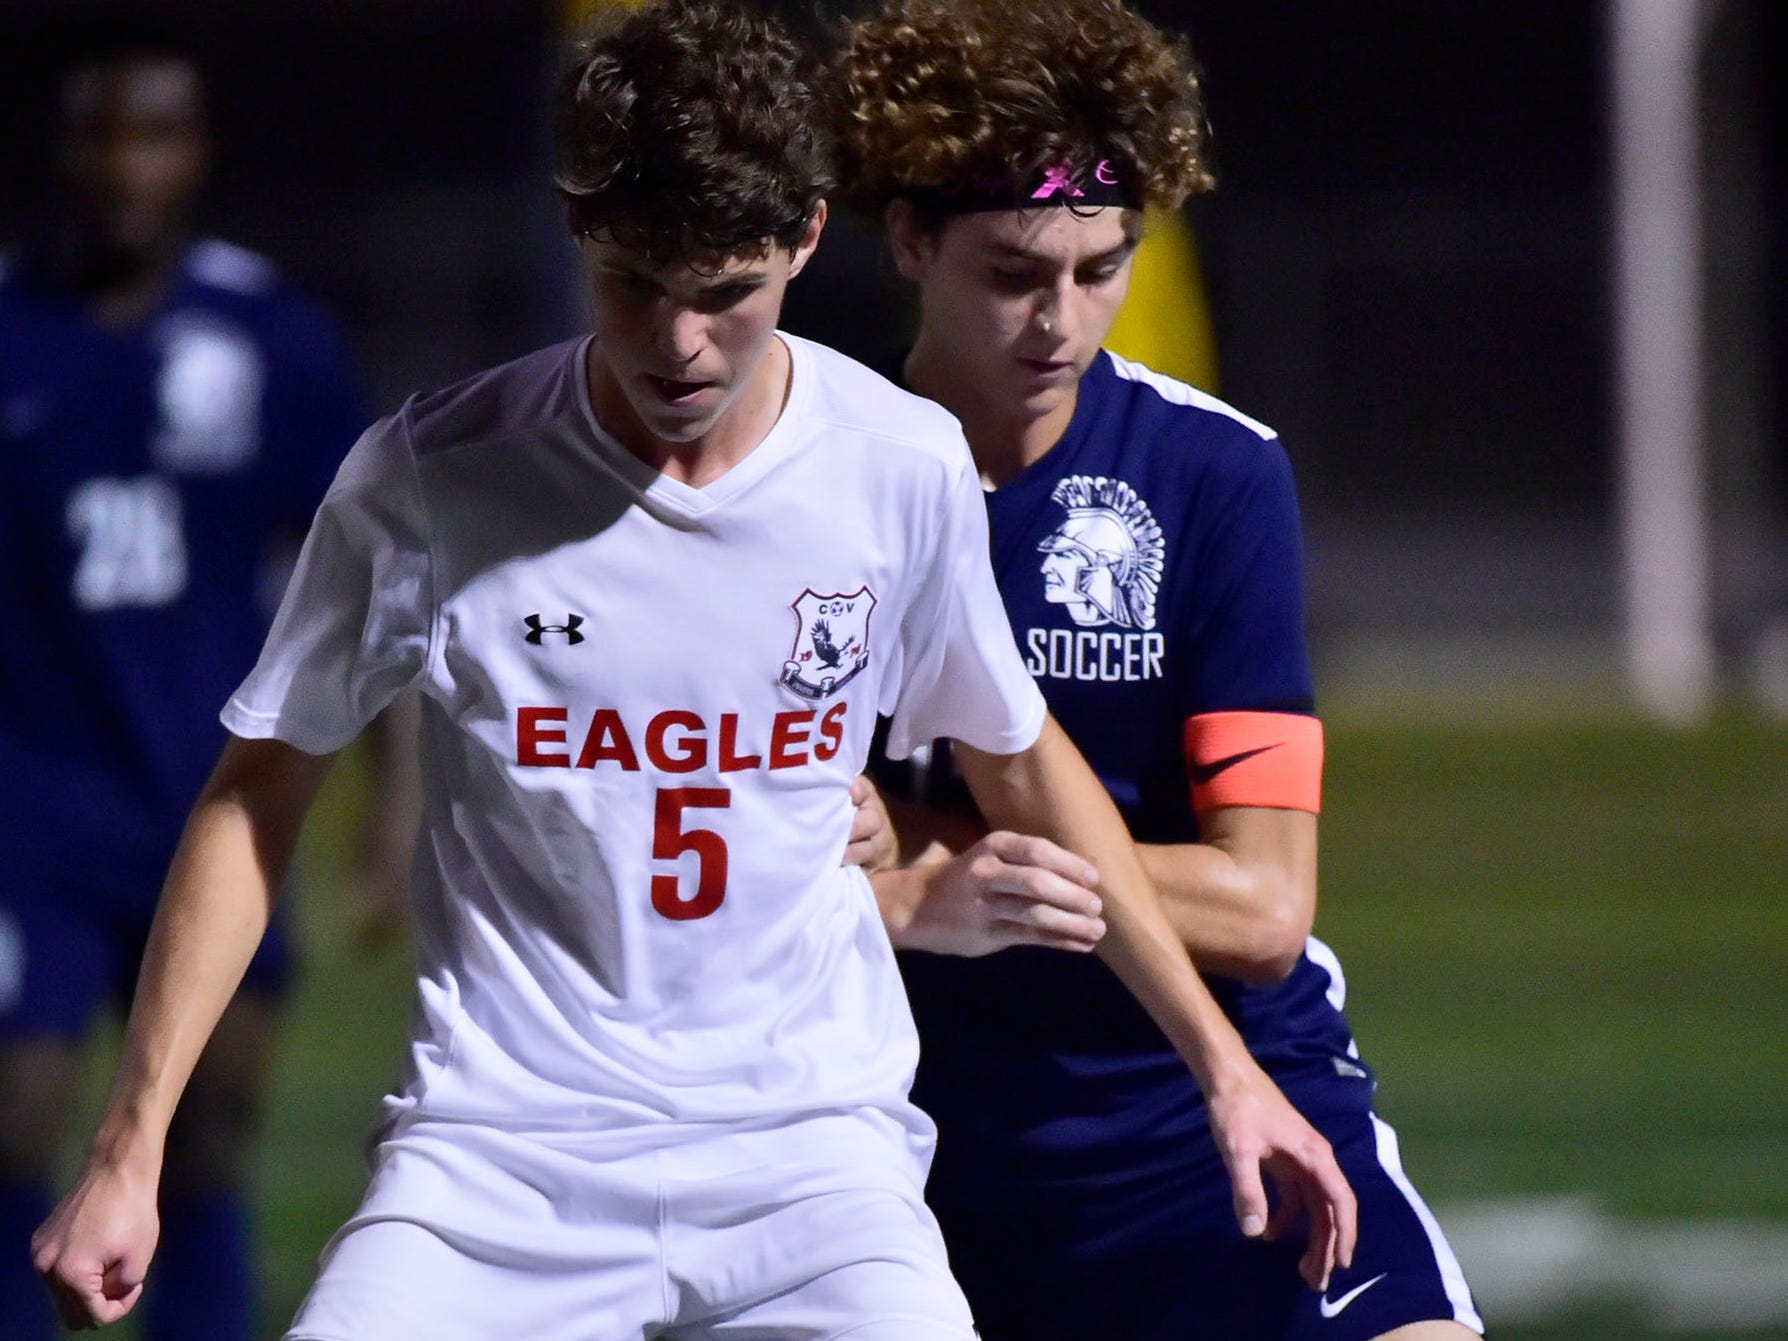 CV's Dominik Nitecki dribbles the ball in front of Chambersburg's Aaron Maynard. Chambersburg hosted Cumberland Valley in PIAA soccer on Thursday, Oct. 4, 2018, but dropped a 2-1 match in double overtime.